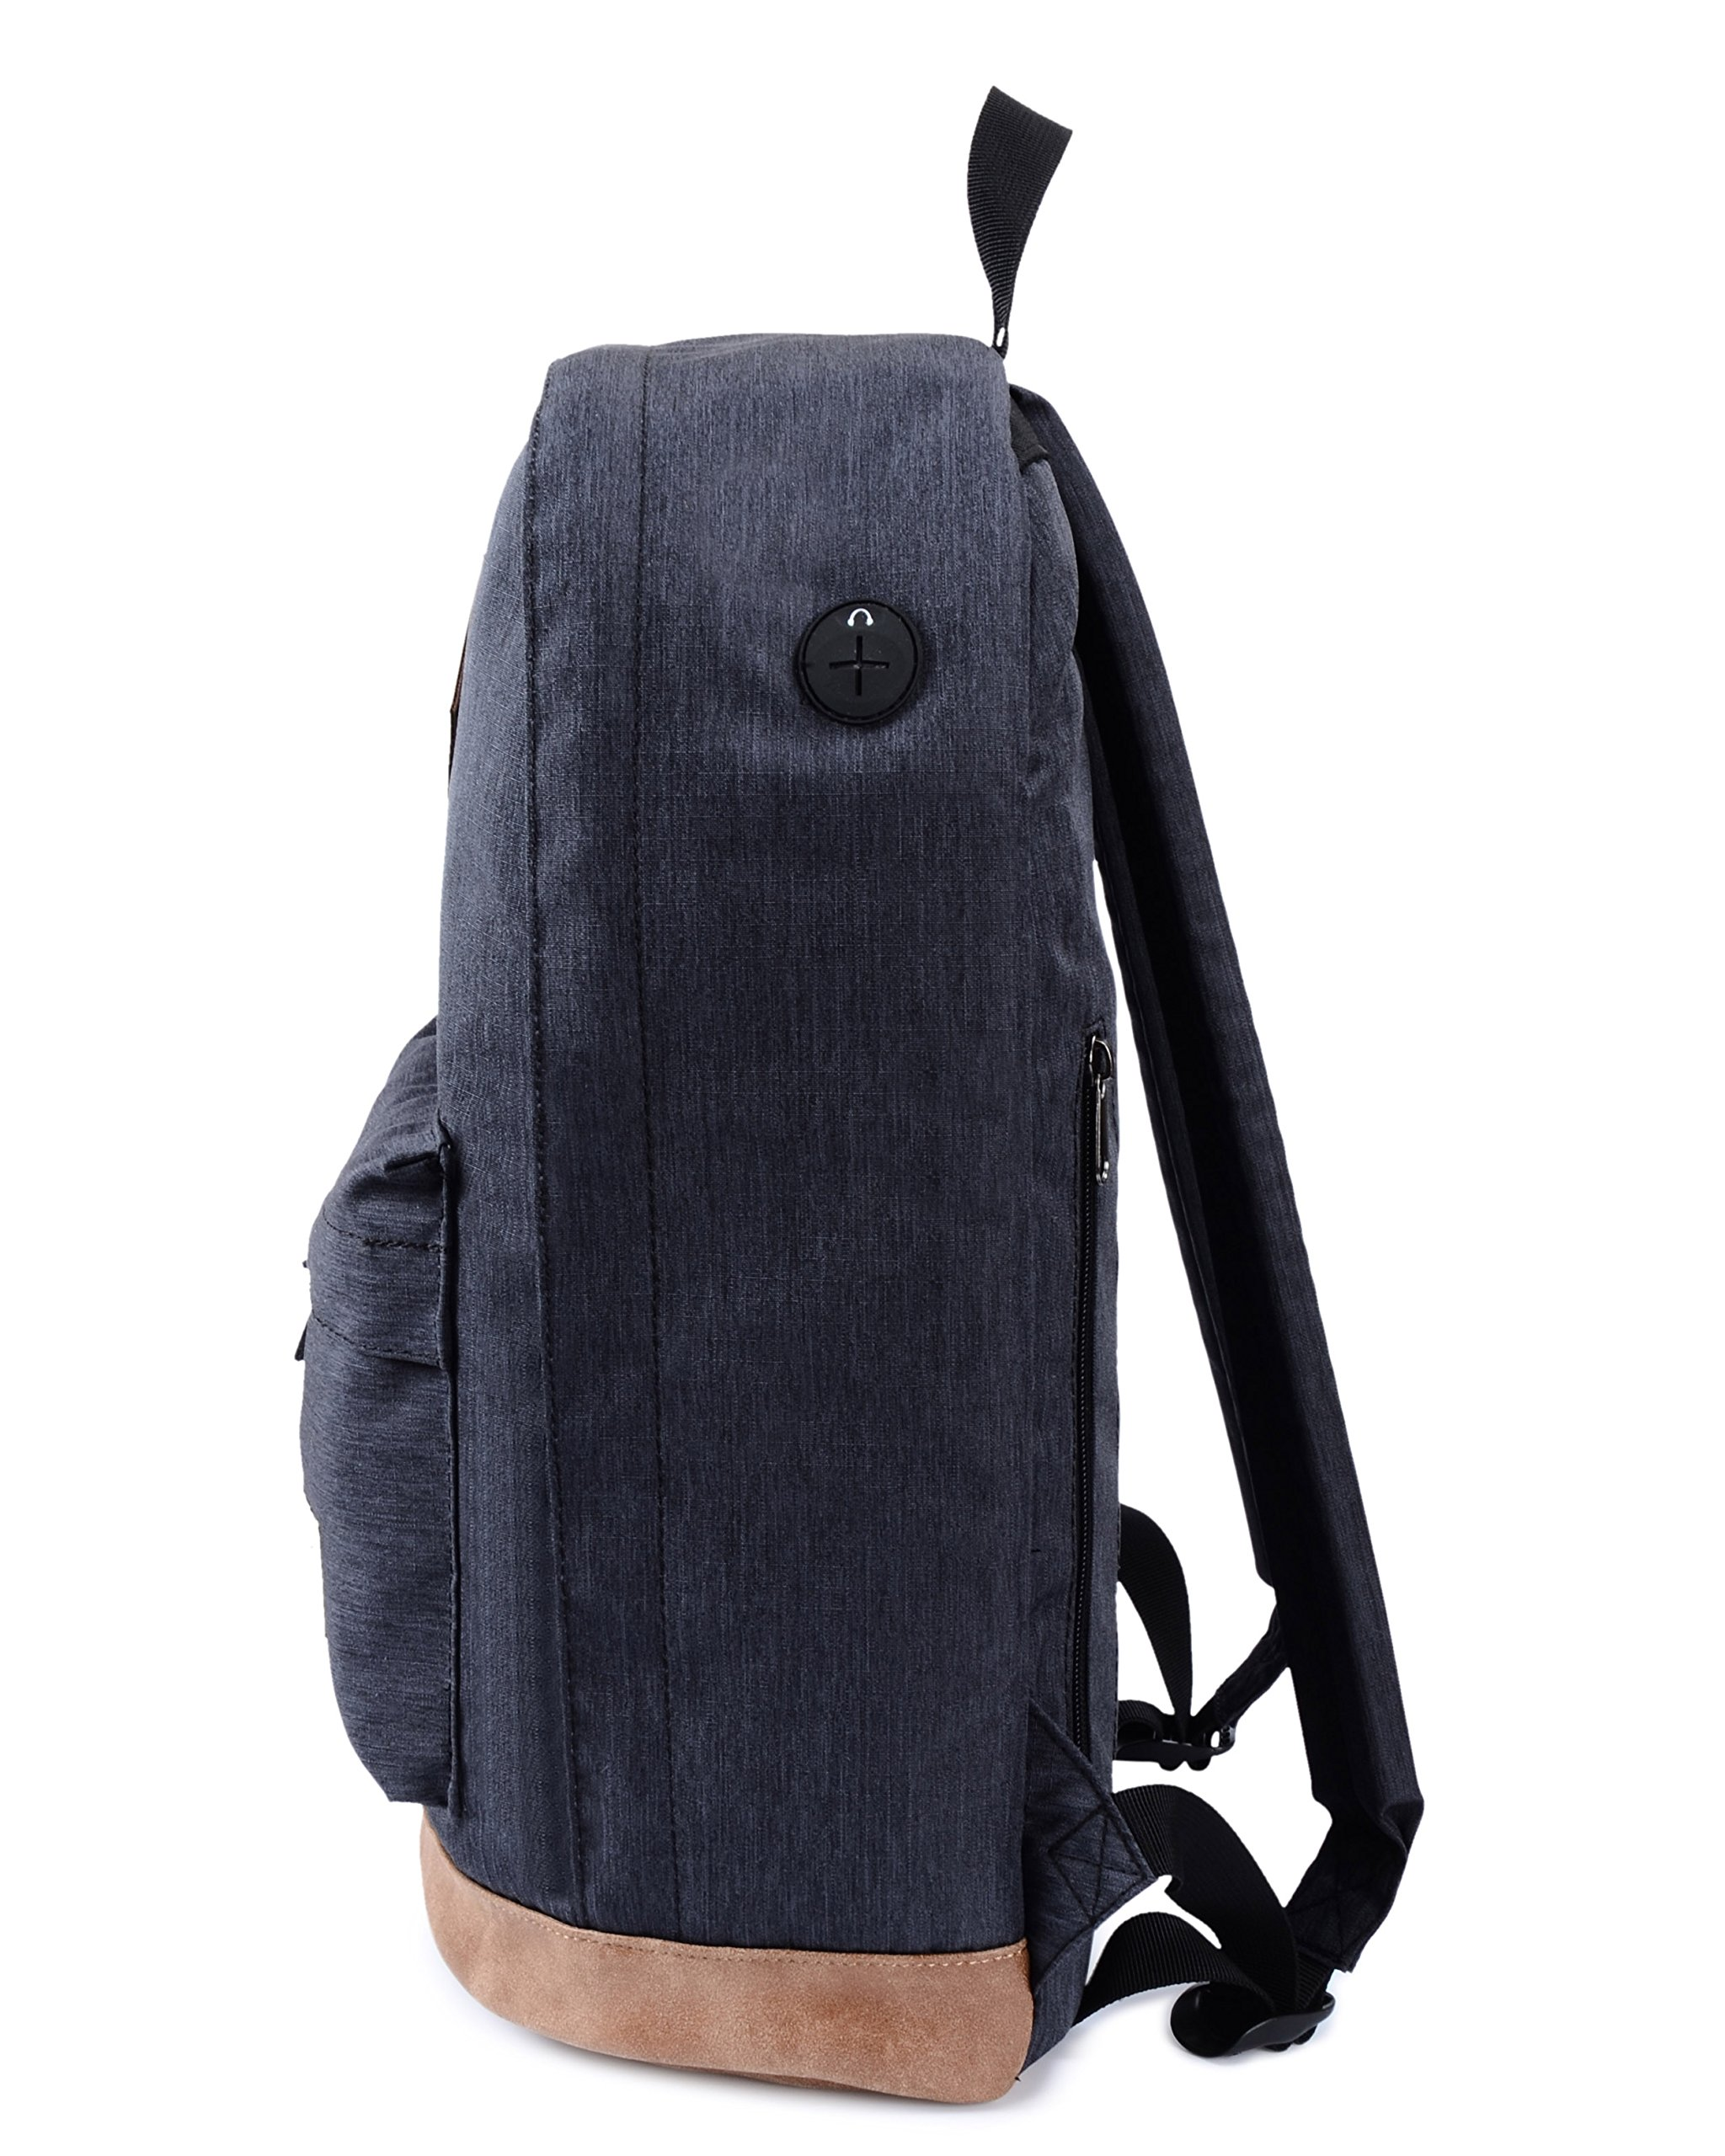 936Plus College School Backpack Travel Rucksack | Fits 15.6'' Laptop | 18''x12''x6'' | Black by hotstyle (Image #4)